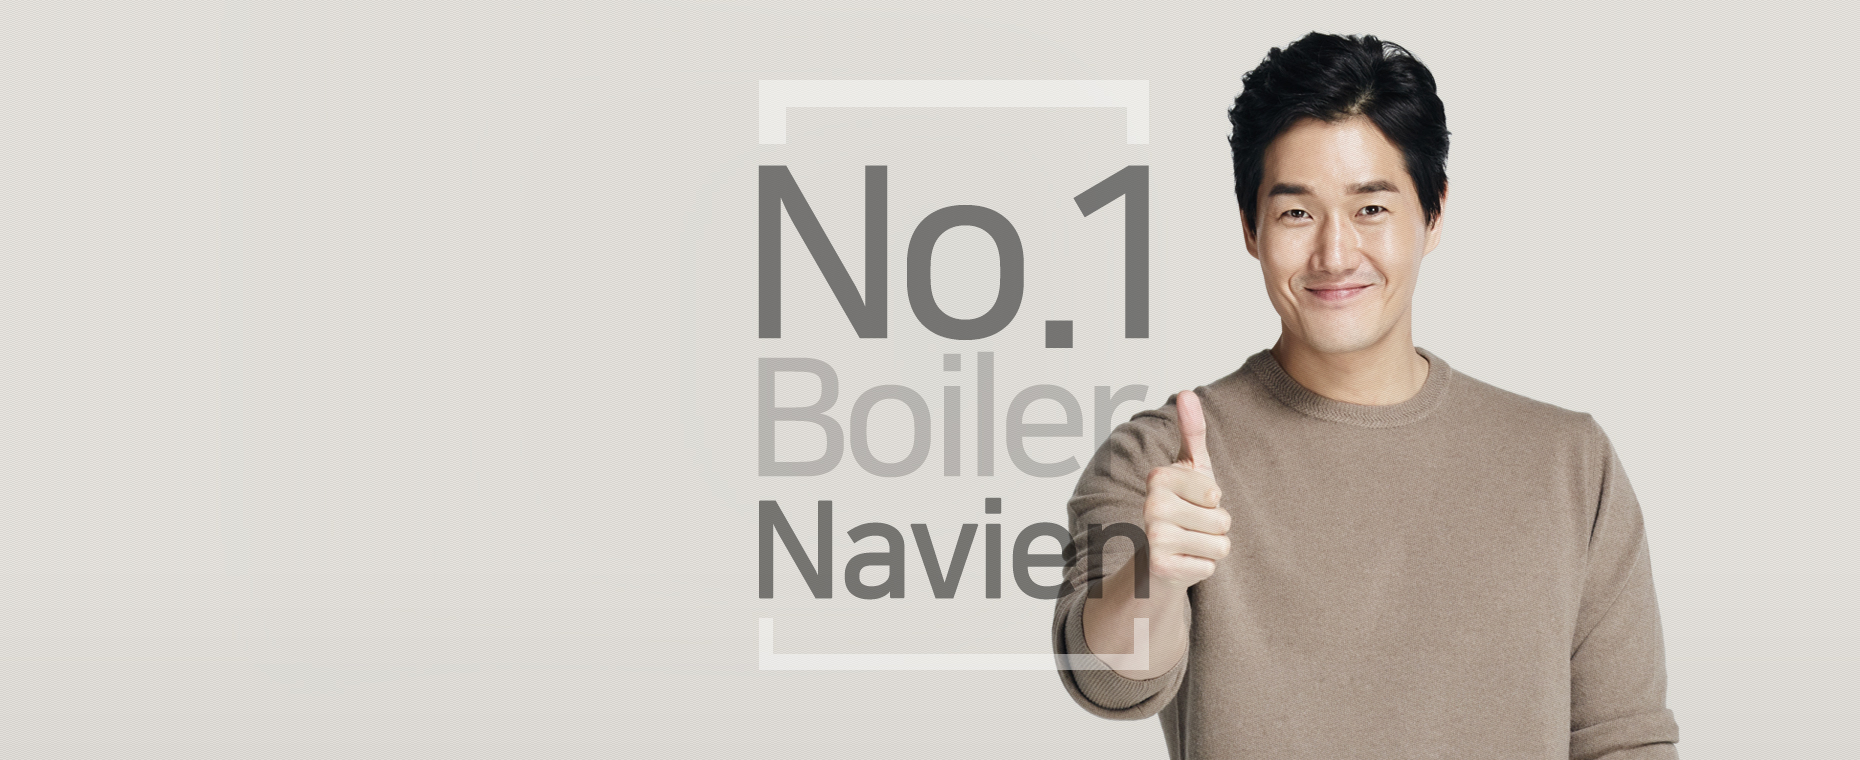 Korea's most reputable boiler manufacturer, KD Navien